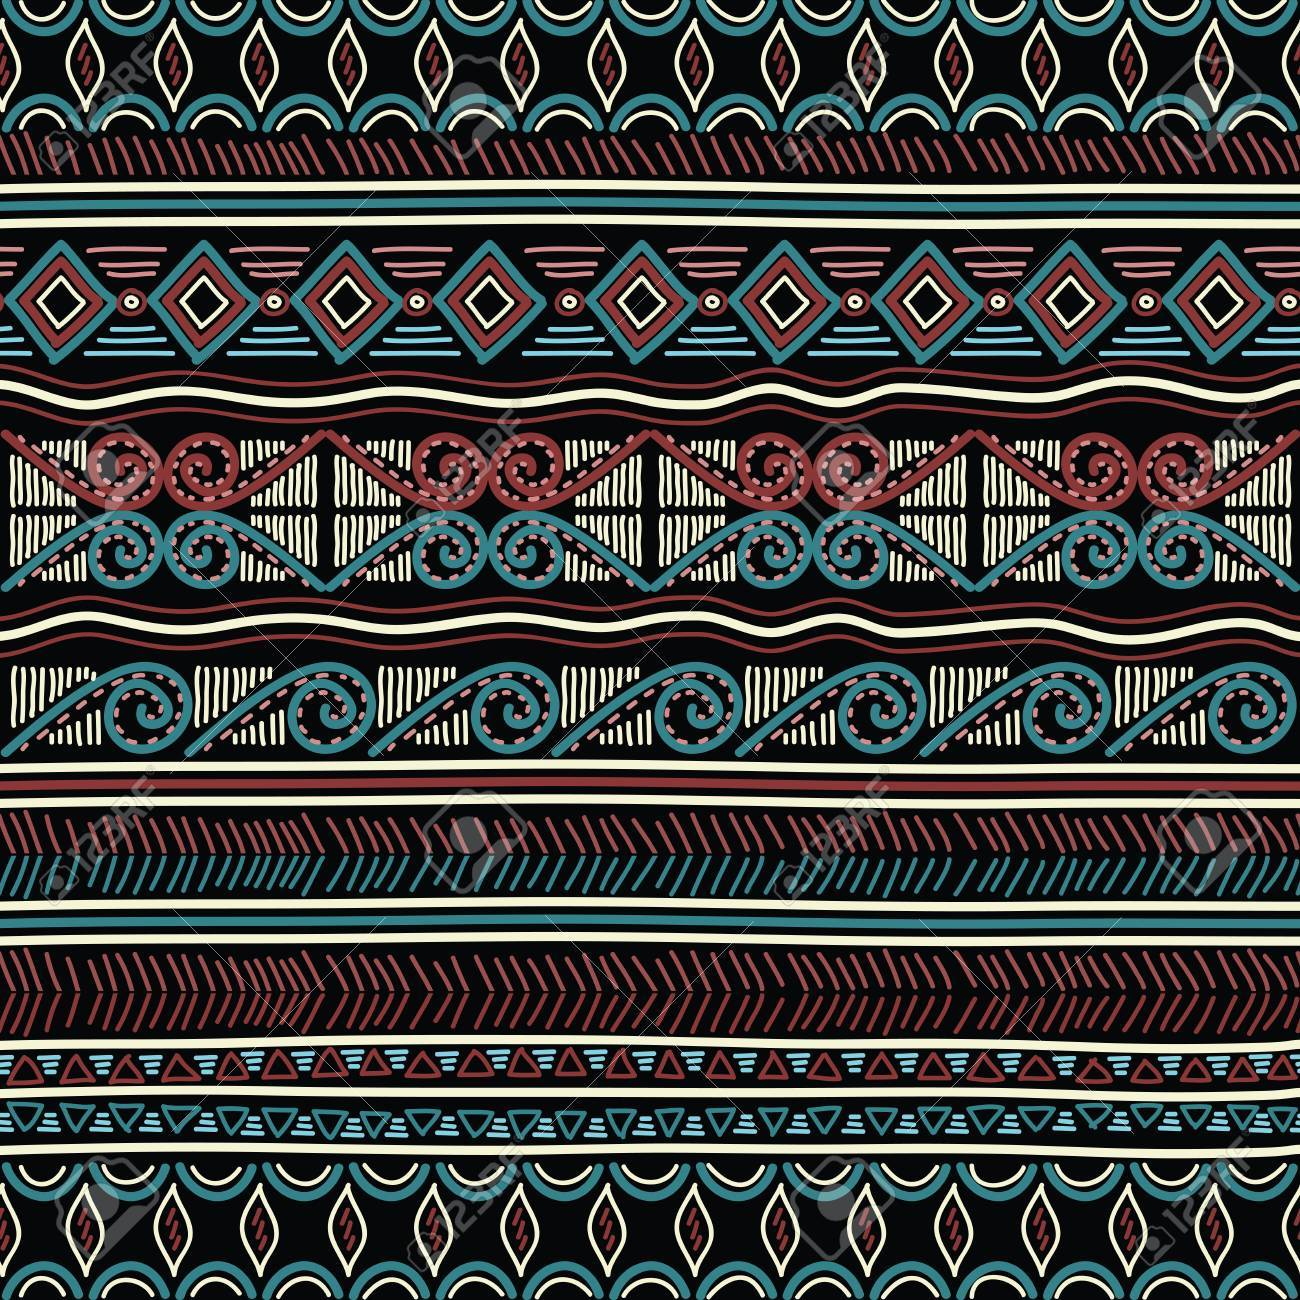 Geometric ethnic oriental seamless pattern. Hand doodled traditional design for carpet, wallpaper, textile and fabric. Embroidery stylized vector illustration. Print for clothing. - 82073094